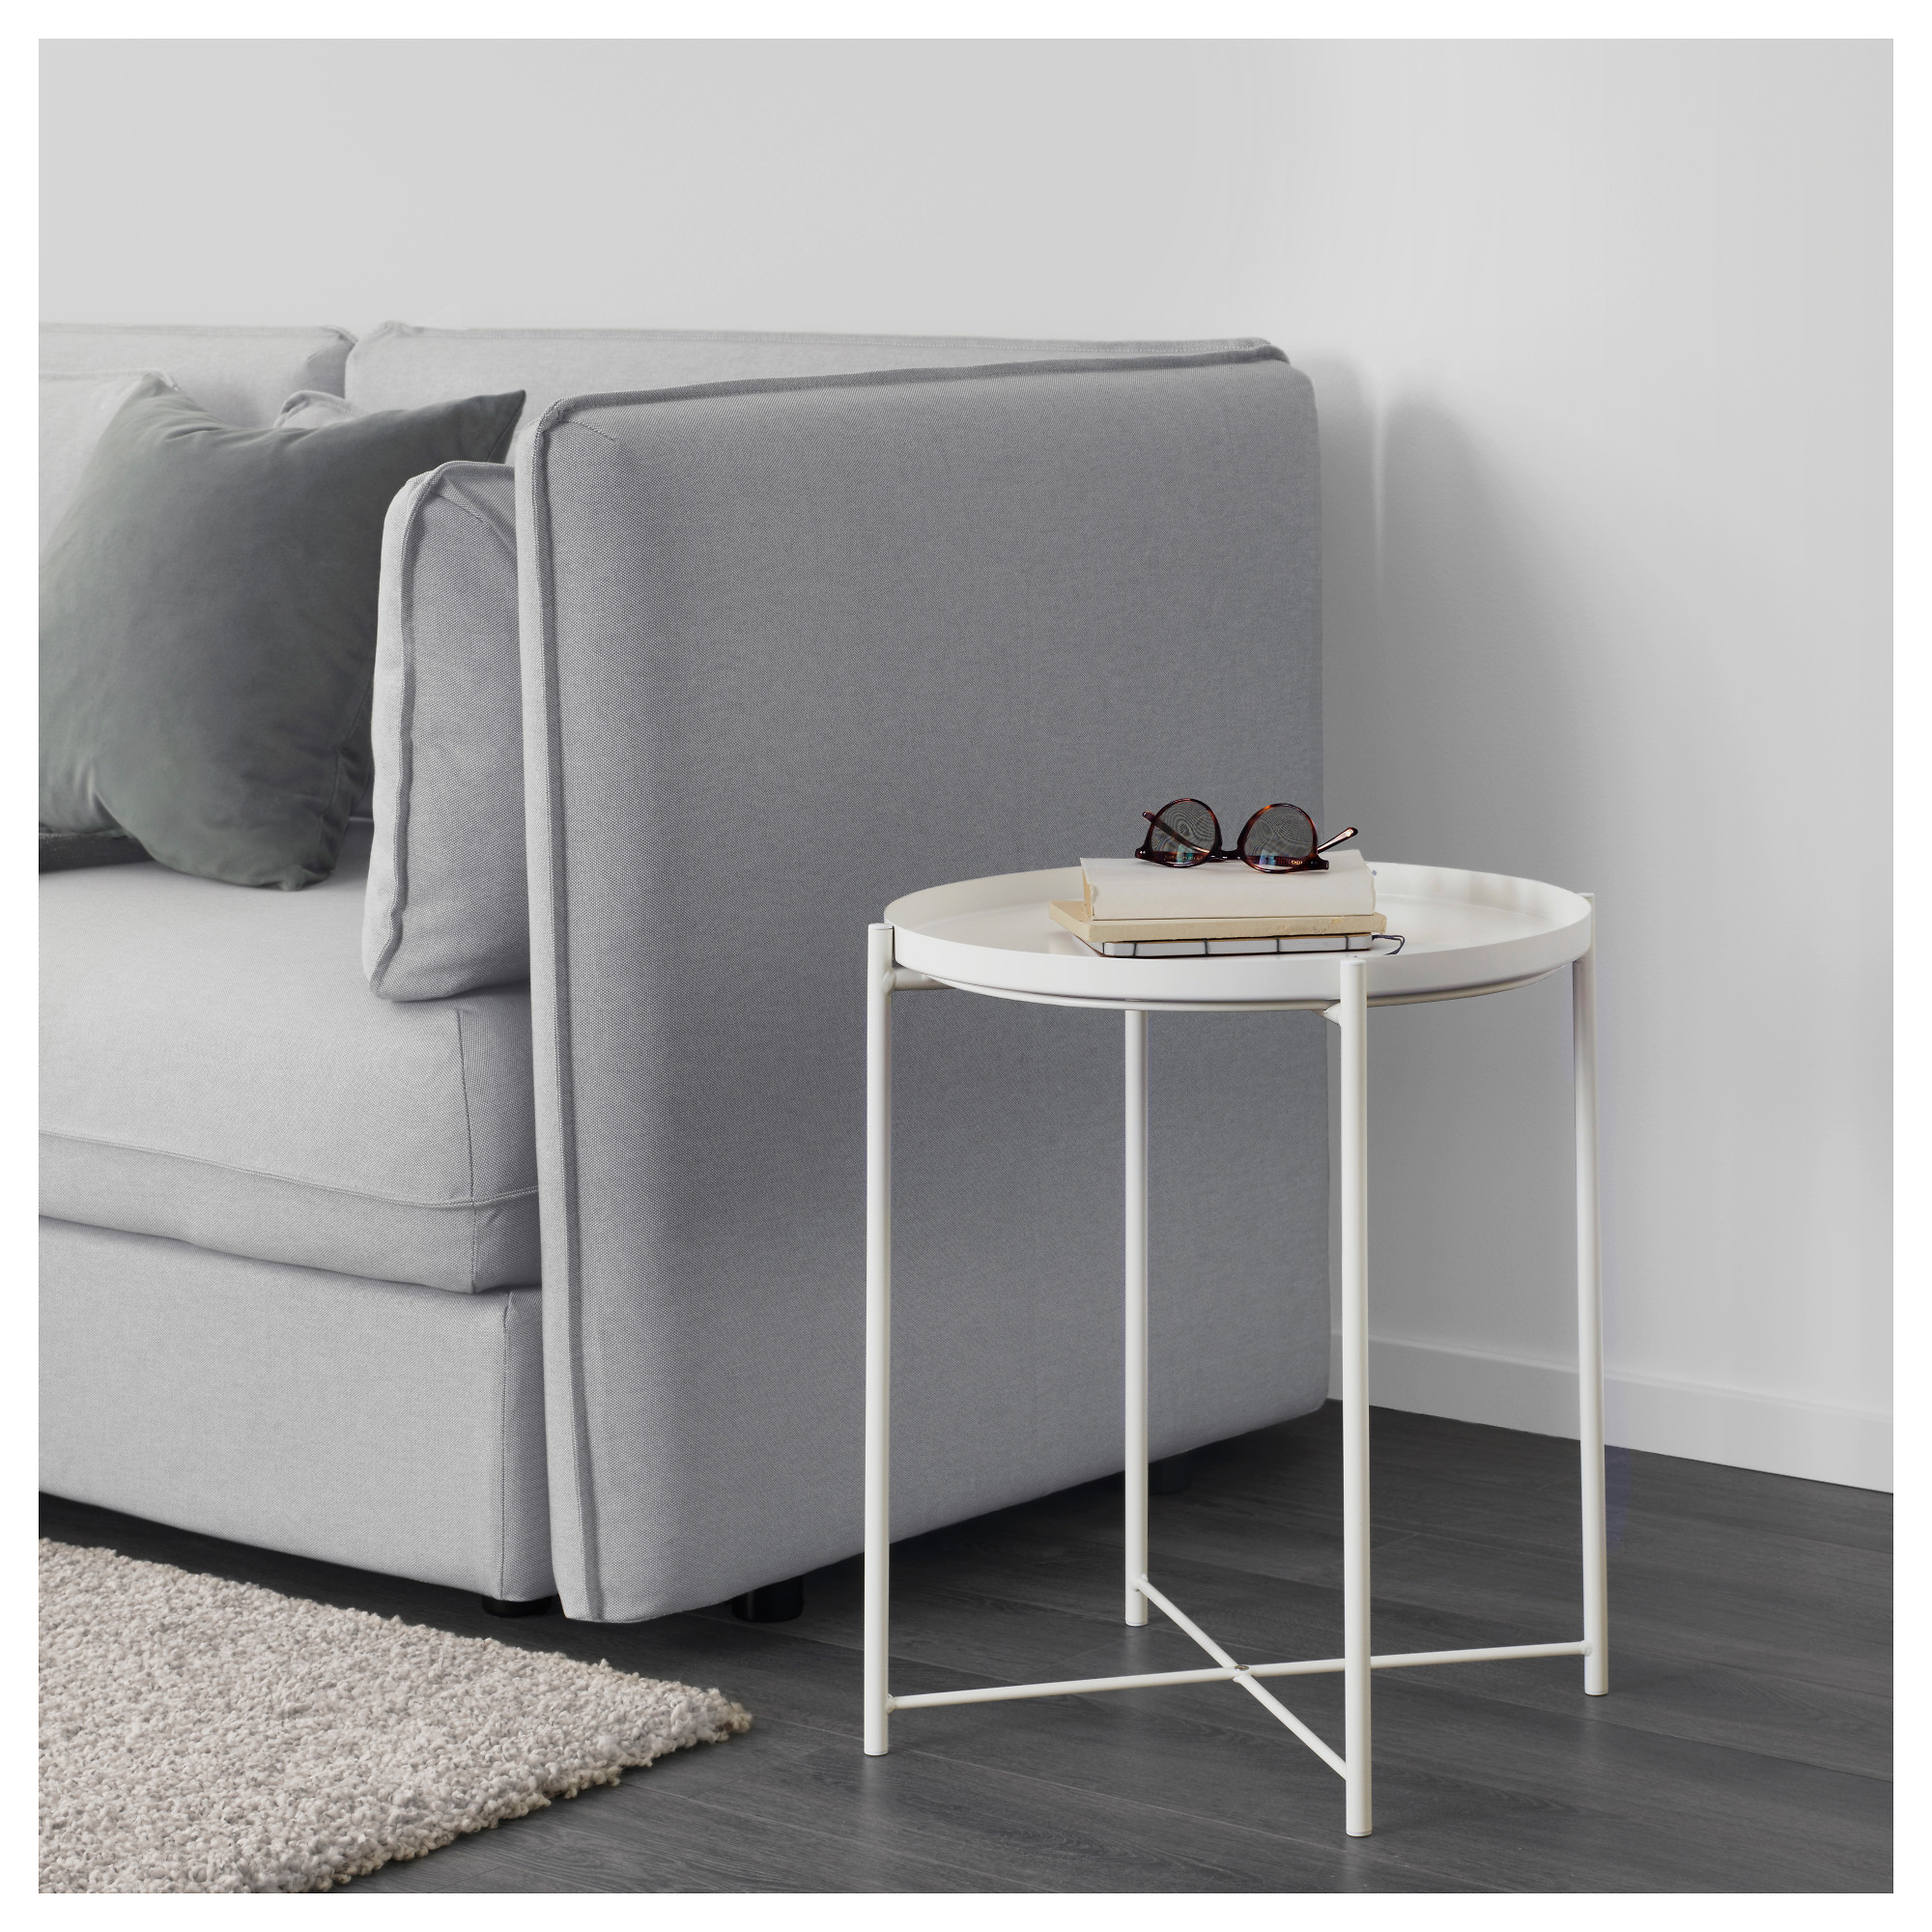 gladom tray table white ikea end tables coffee you can use the removable for serving painting furniture vintage style big lots items gold metal bedside modern lamps affordable